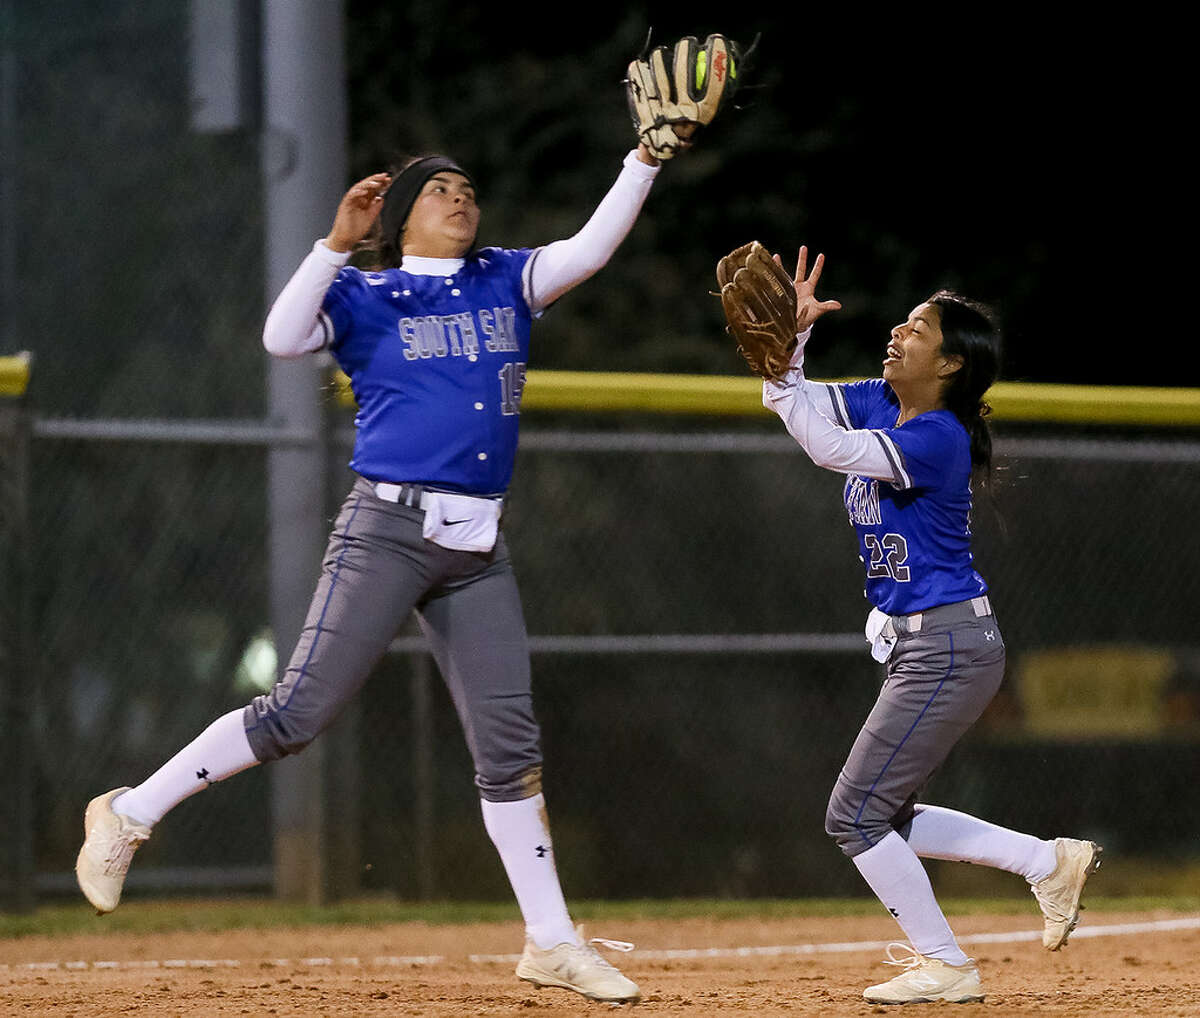 South San's Skye Estrada, left, makes a catch to end the first inning as Emerie Poblano comes in to help during their high school softball game with MacArthur at NEISD Softball Complex's West Field on Tuesday, March 5, 2019.